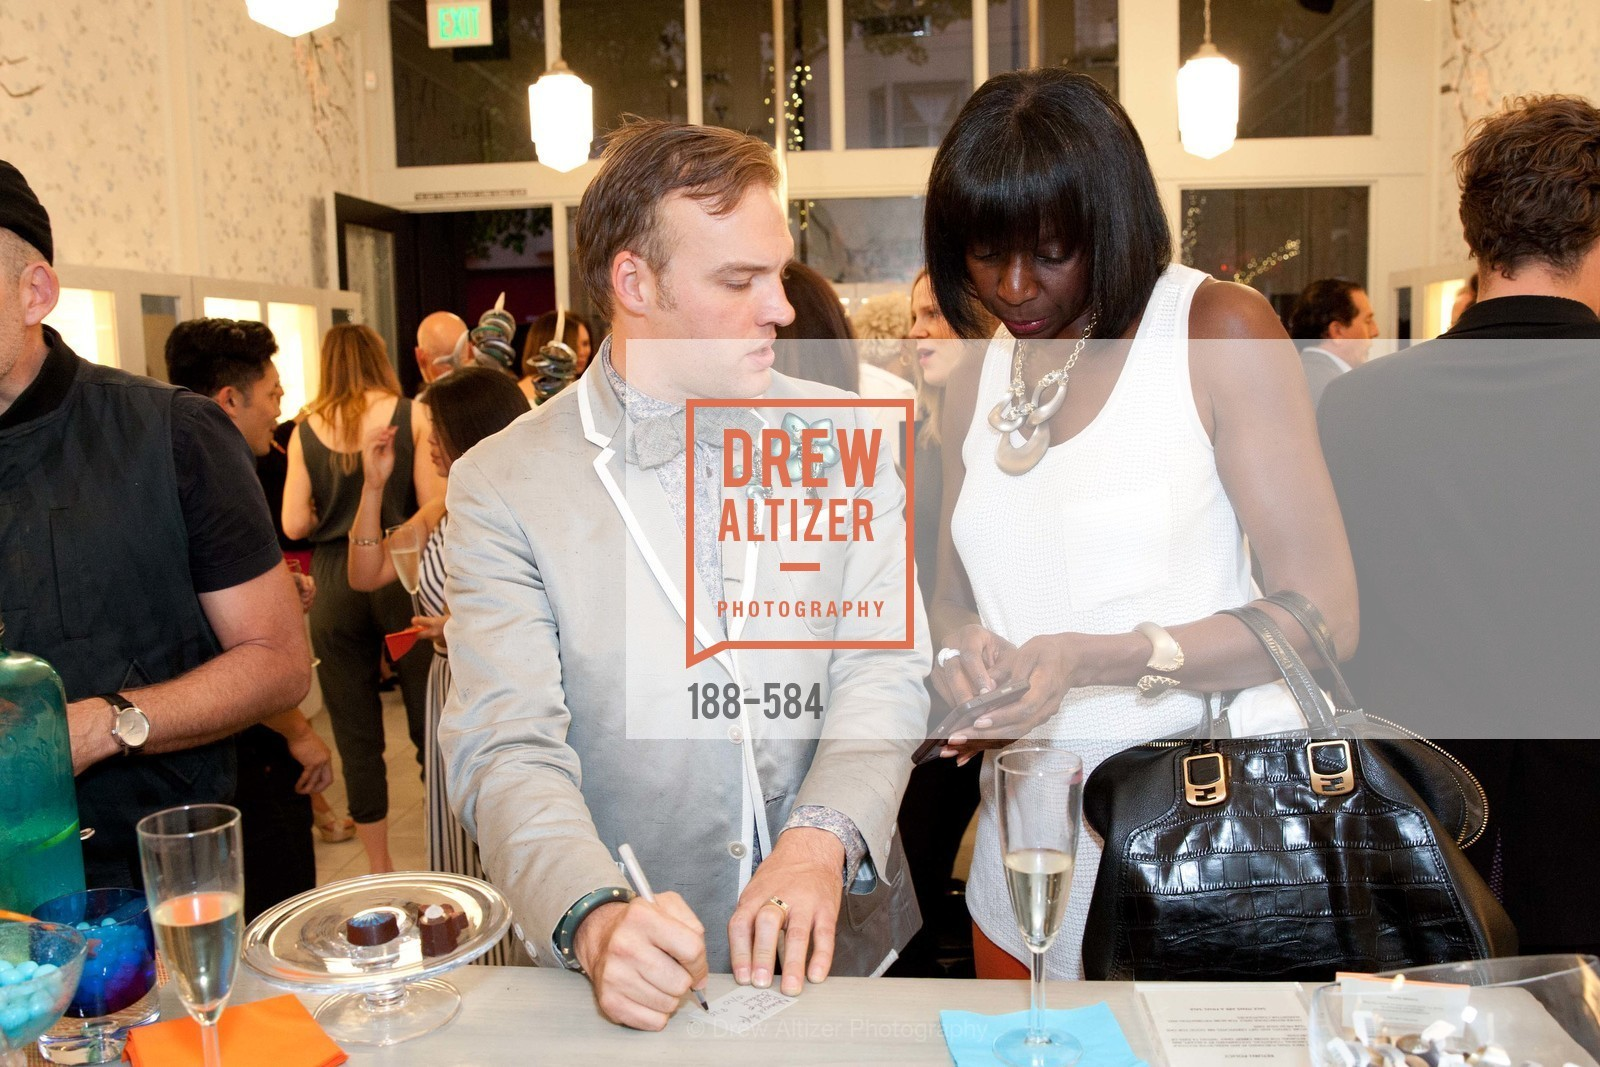 Kelly E. Carter, Alexis Bittar Event; Support of the San Francisco Fall Antique Show Benefitting Enterprise for High School Students Francisco Fall Antique Show, benefiting Enterprise for High School Students, US, October 2nd, 2014,Drew Altizer, Drew Altizer Photography, full-service agency, private events, San Francisco photographer, photographer california